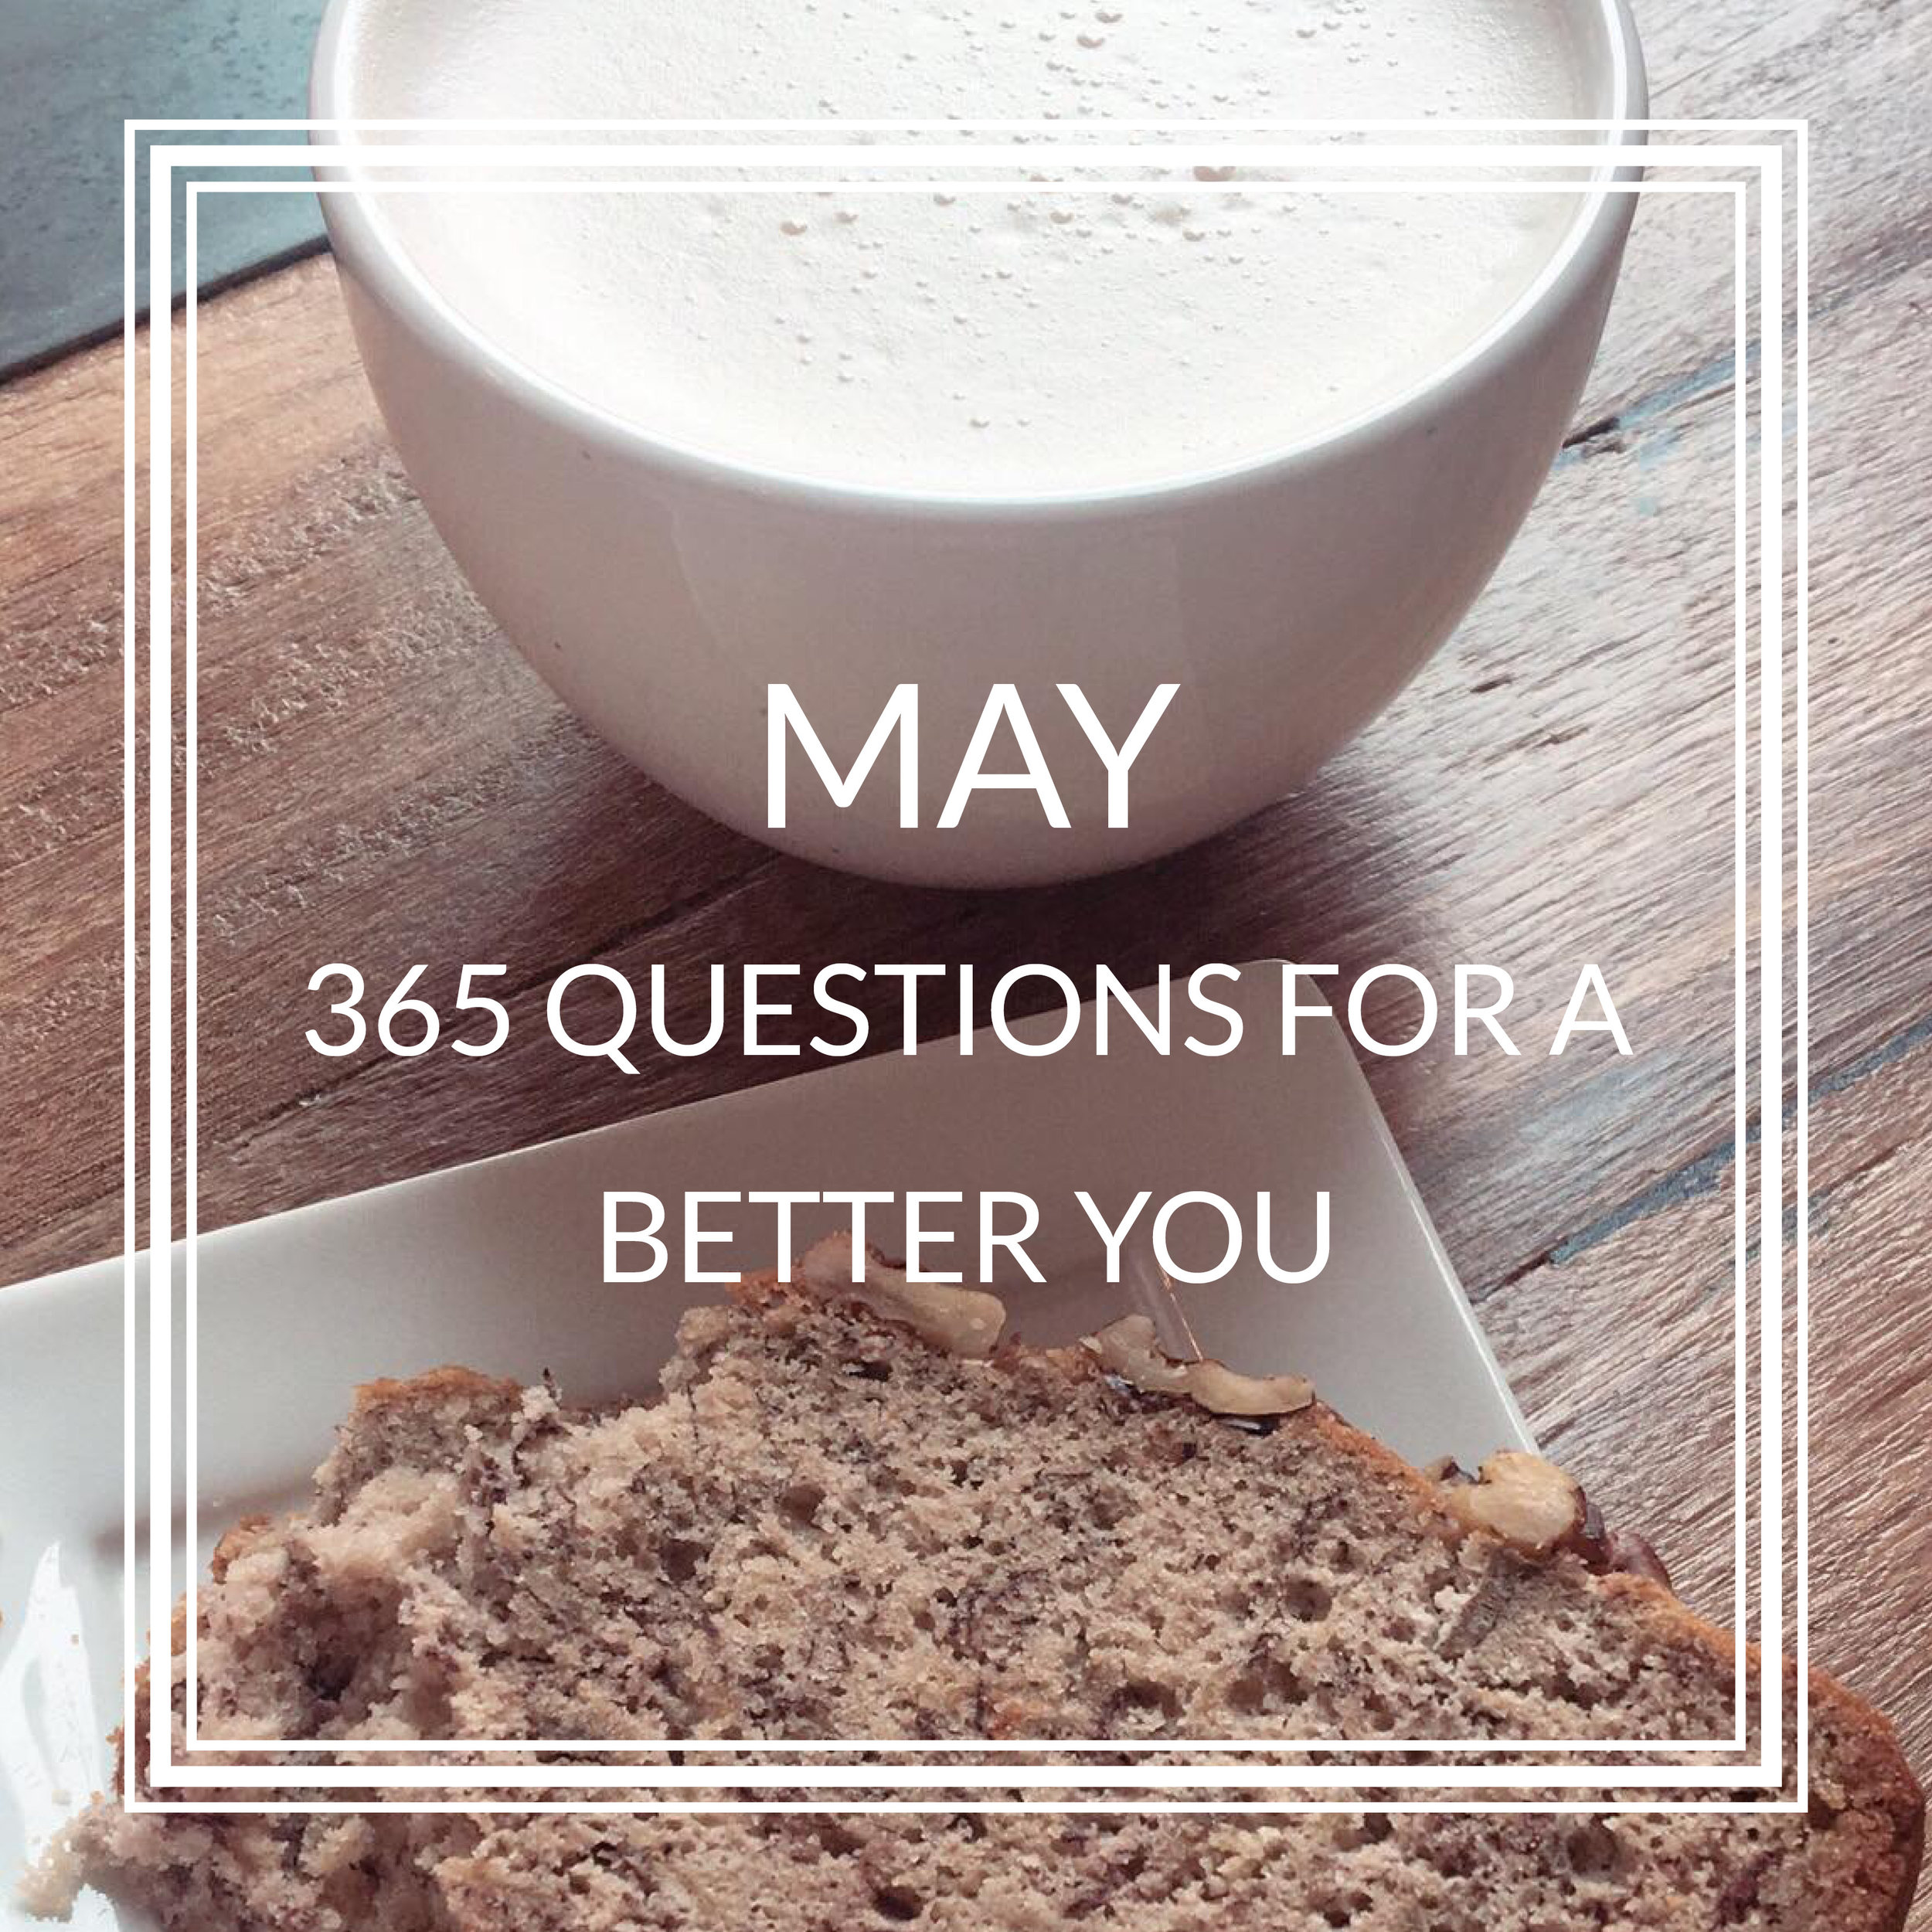 MAY QUESTIONS.jpg